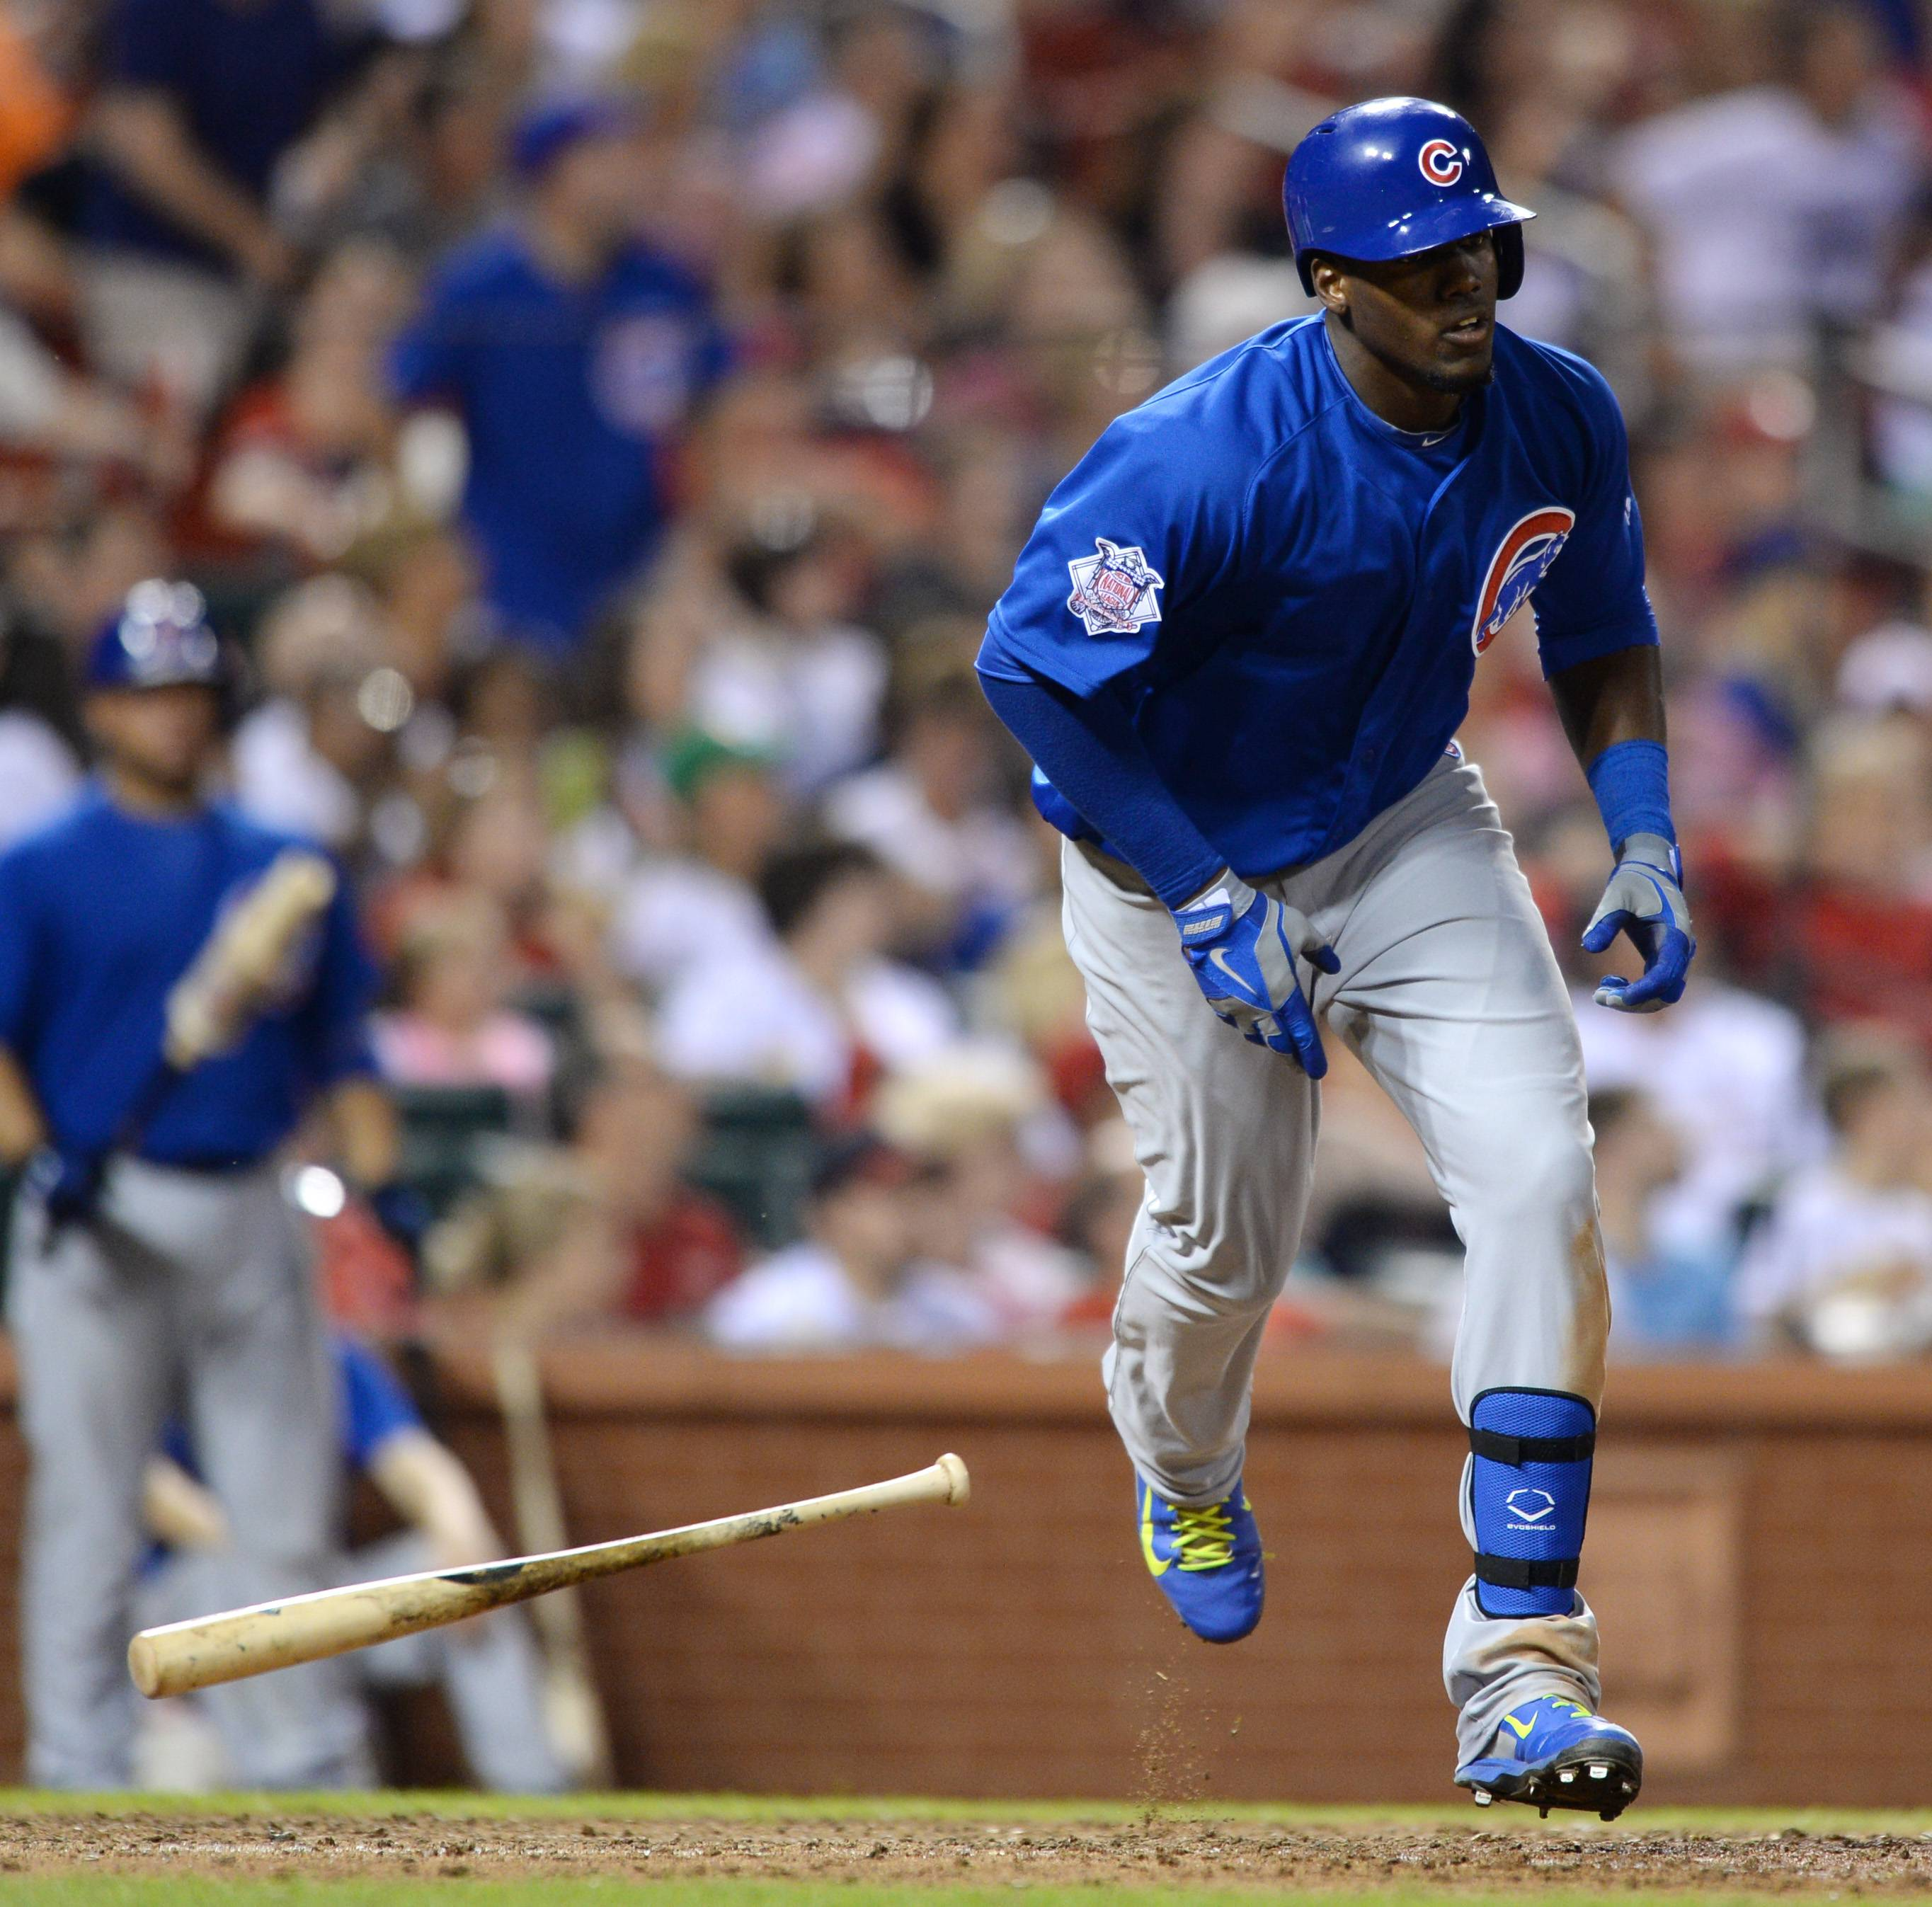 Jorge Soler hit two homers and fellow rookie Javier Baez had a tiebreaking, two-run double in the eighth inning off All-Star reliever Pat Neshek as the Cubs beat the St. Louis Cardinals 7-2 on Friday night